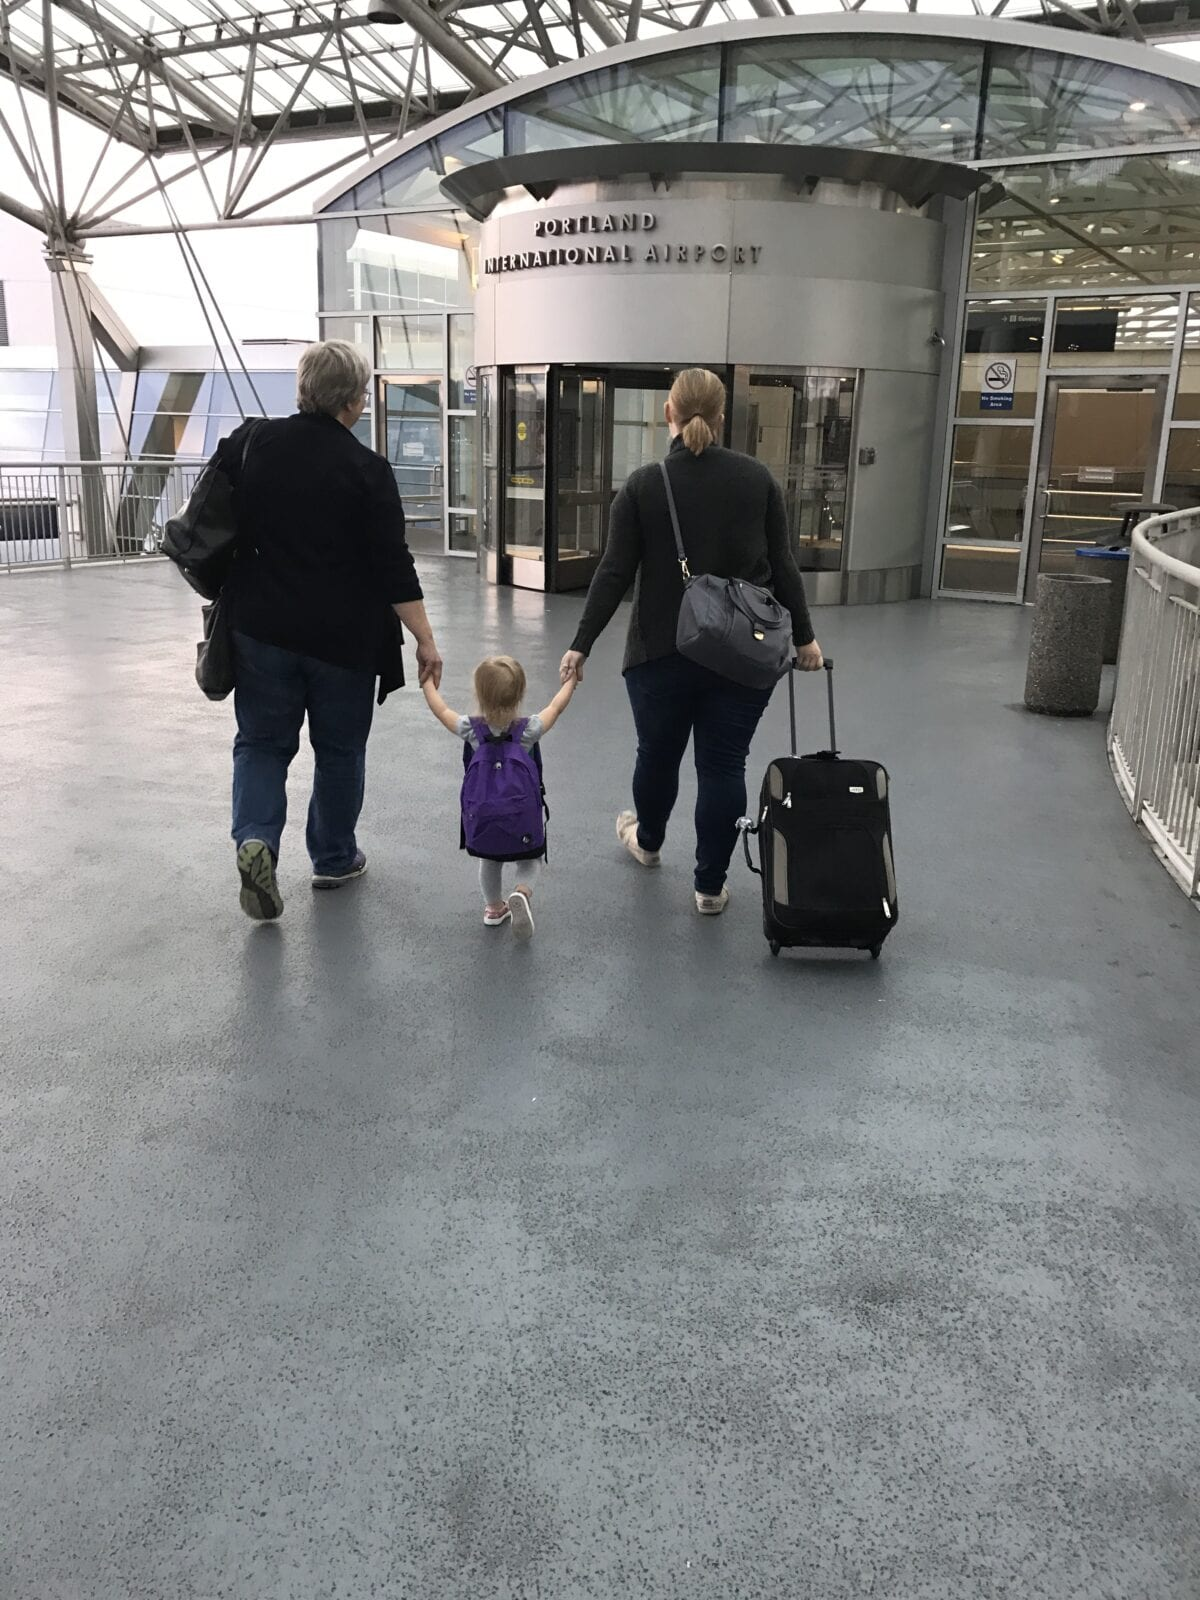 Family walking through airport image.